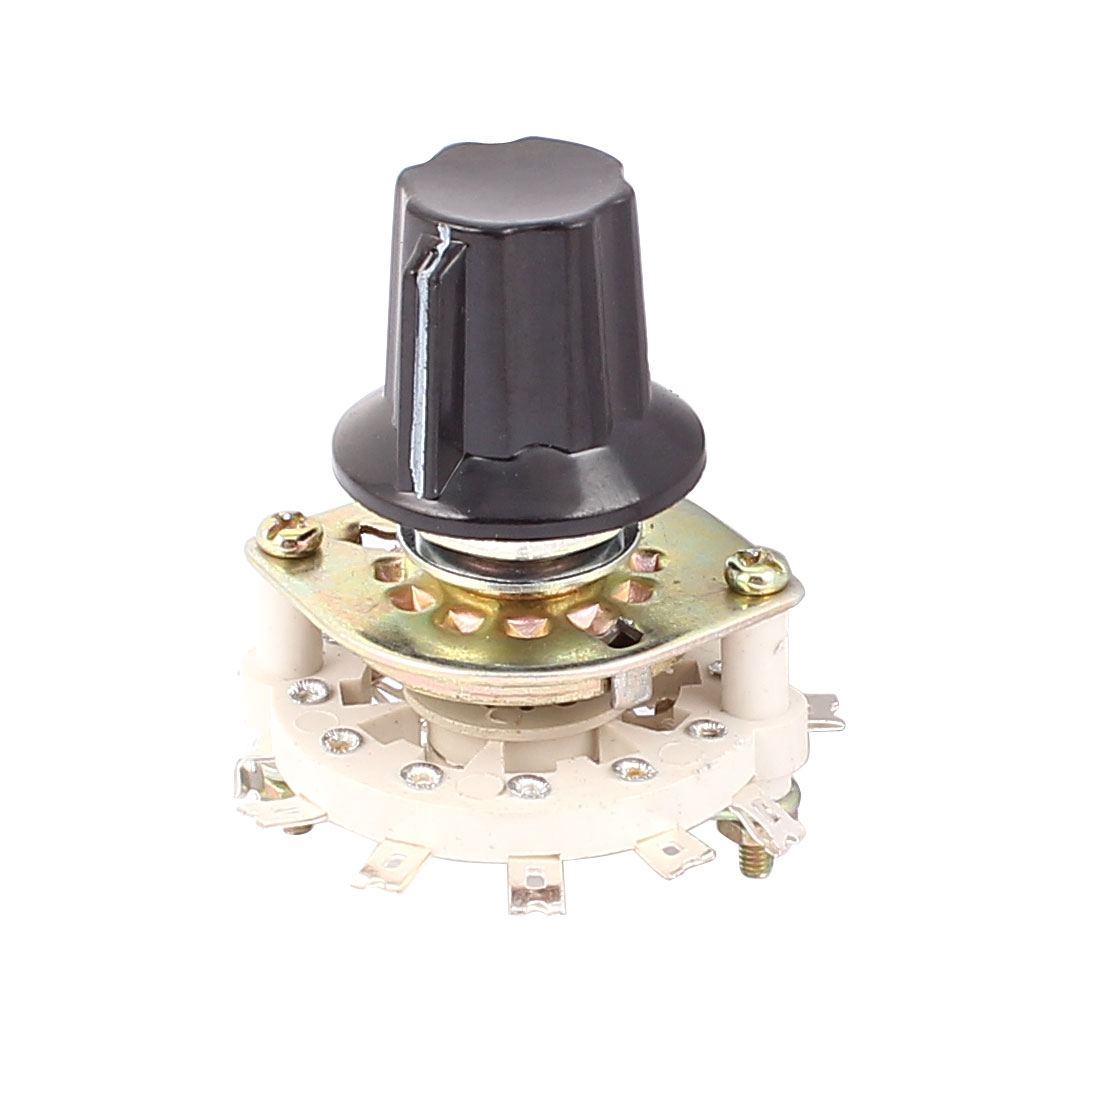 KCZ 2 Pole 5 Throw 6mm Shaft Band Channel Rotary Switch Selector w Cap